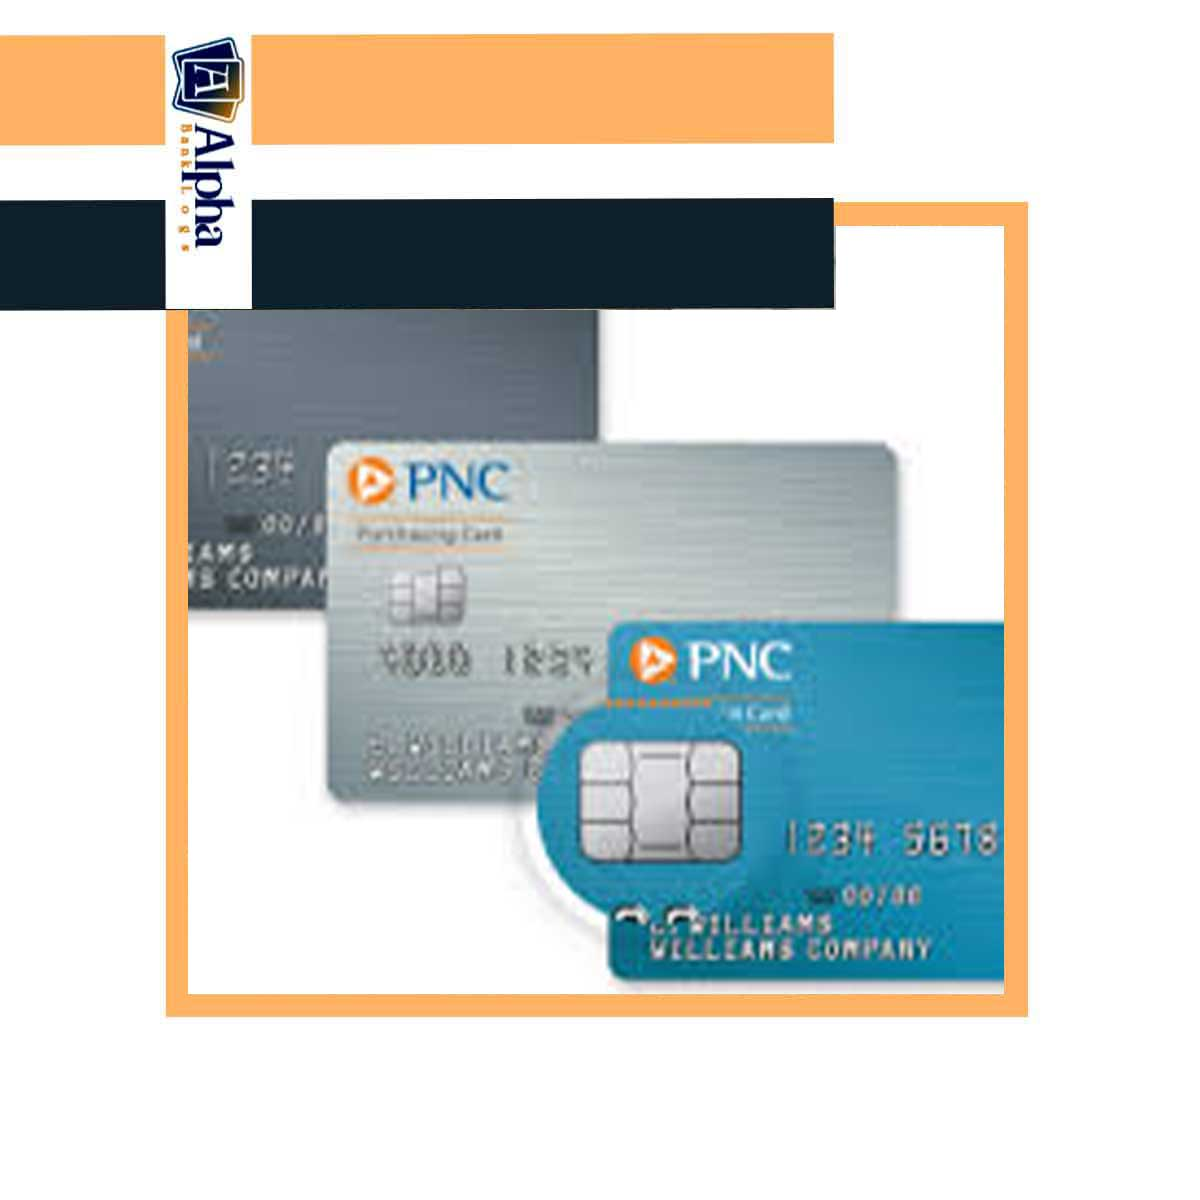 PNC DEBIT CARD WITH PIN